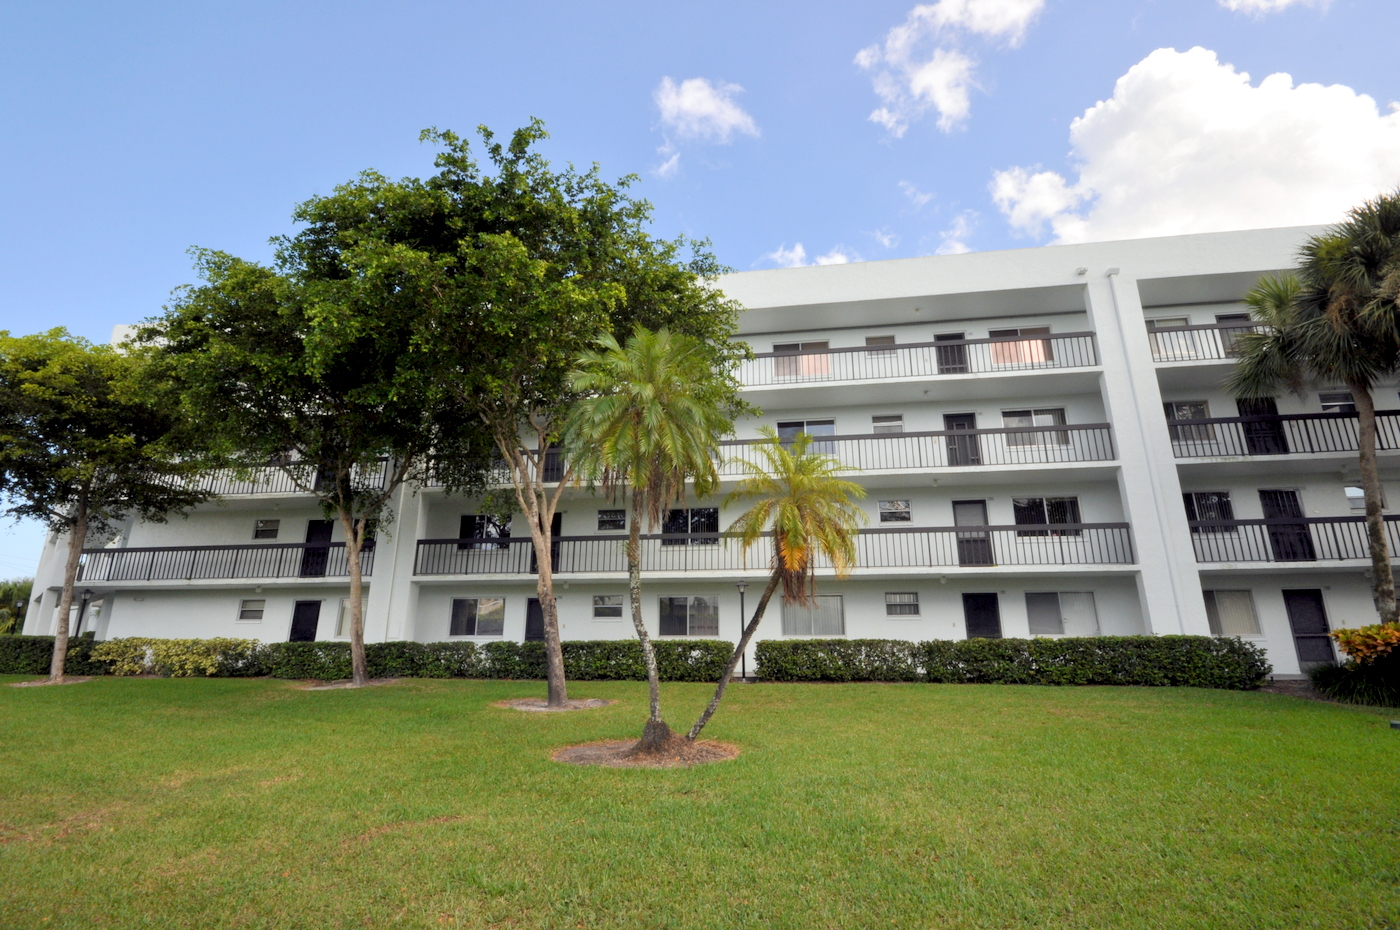 lake worth See all 3 studio apartments in lake worth, fl currently available for rent each apartmentscom listing has verified availability, rental rates, photos, floor.